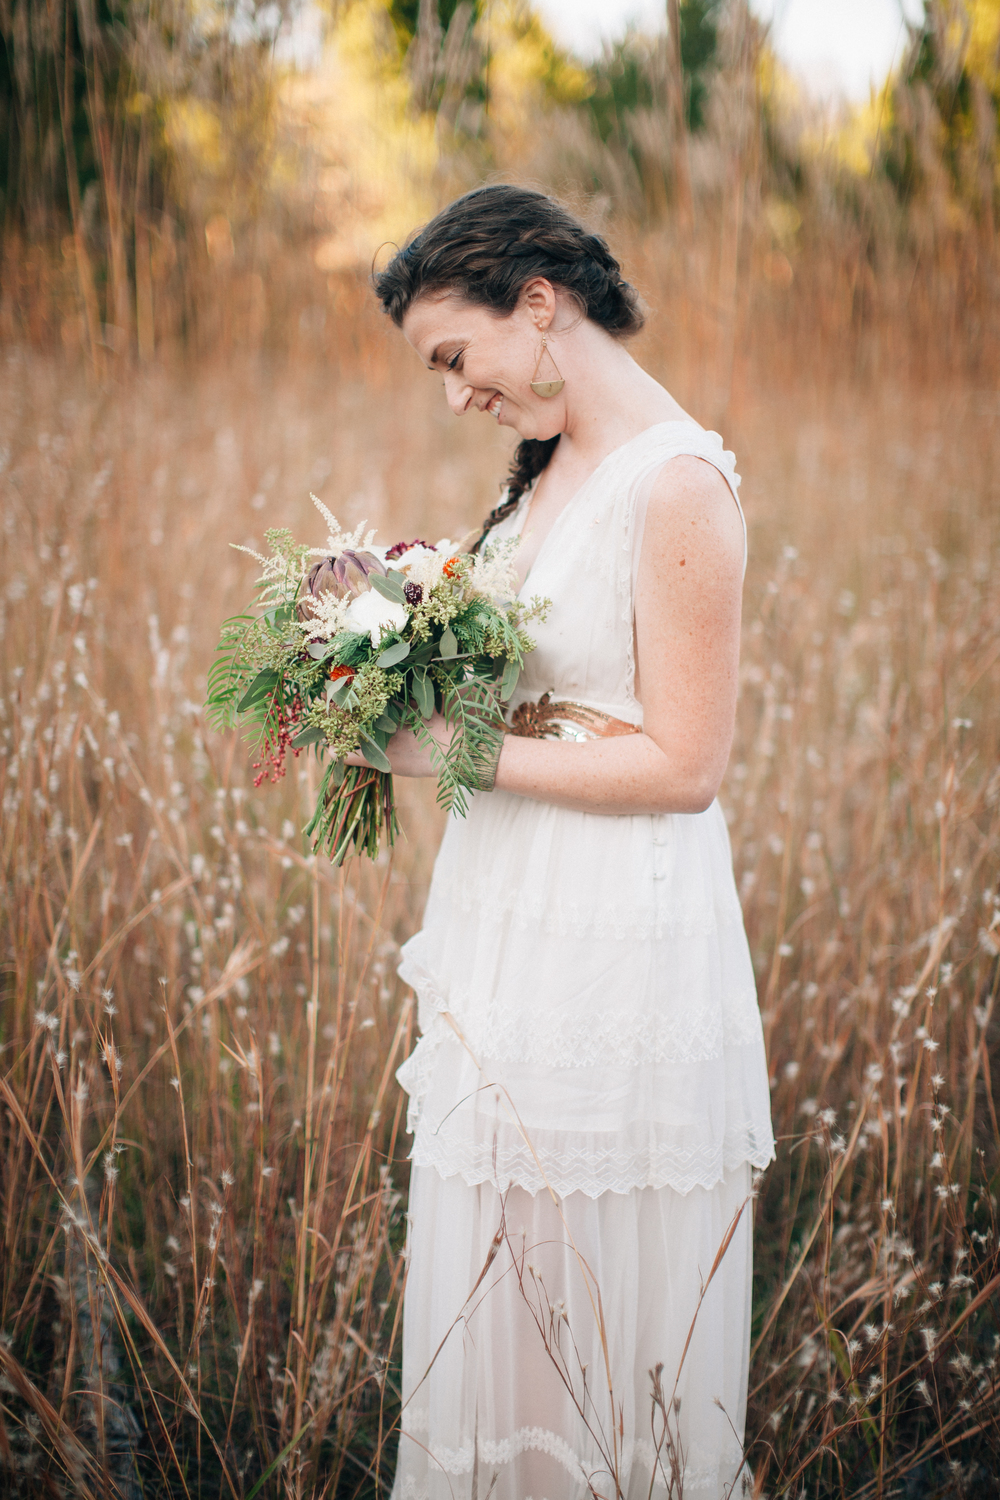 Nashville Elopement // Organic, Natural Floral Design